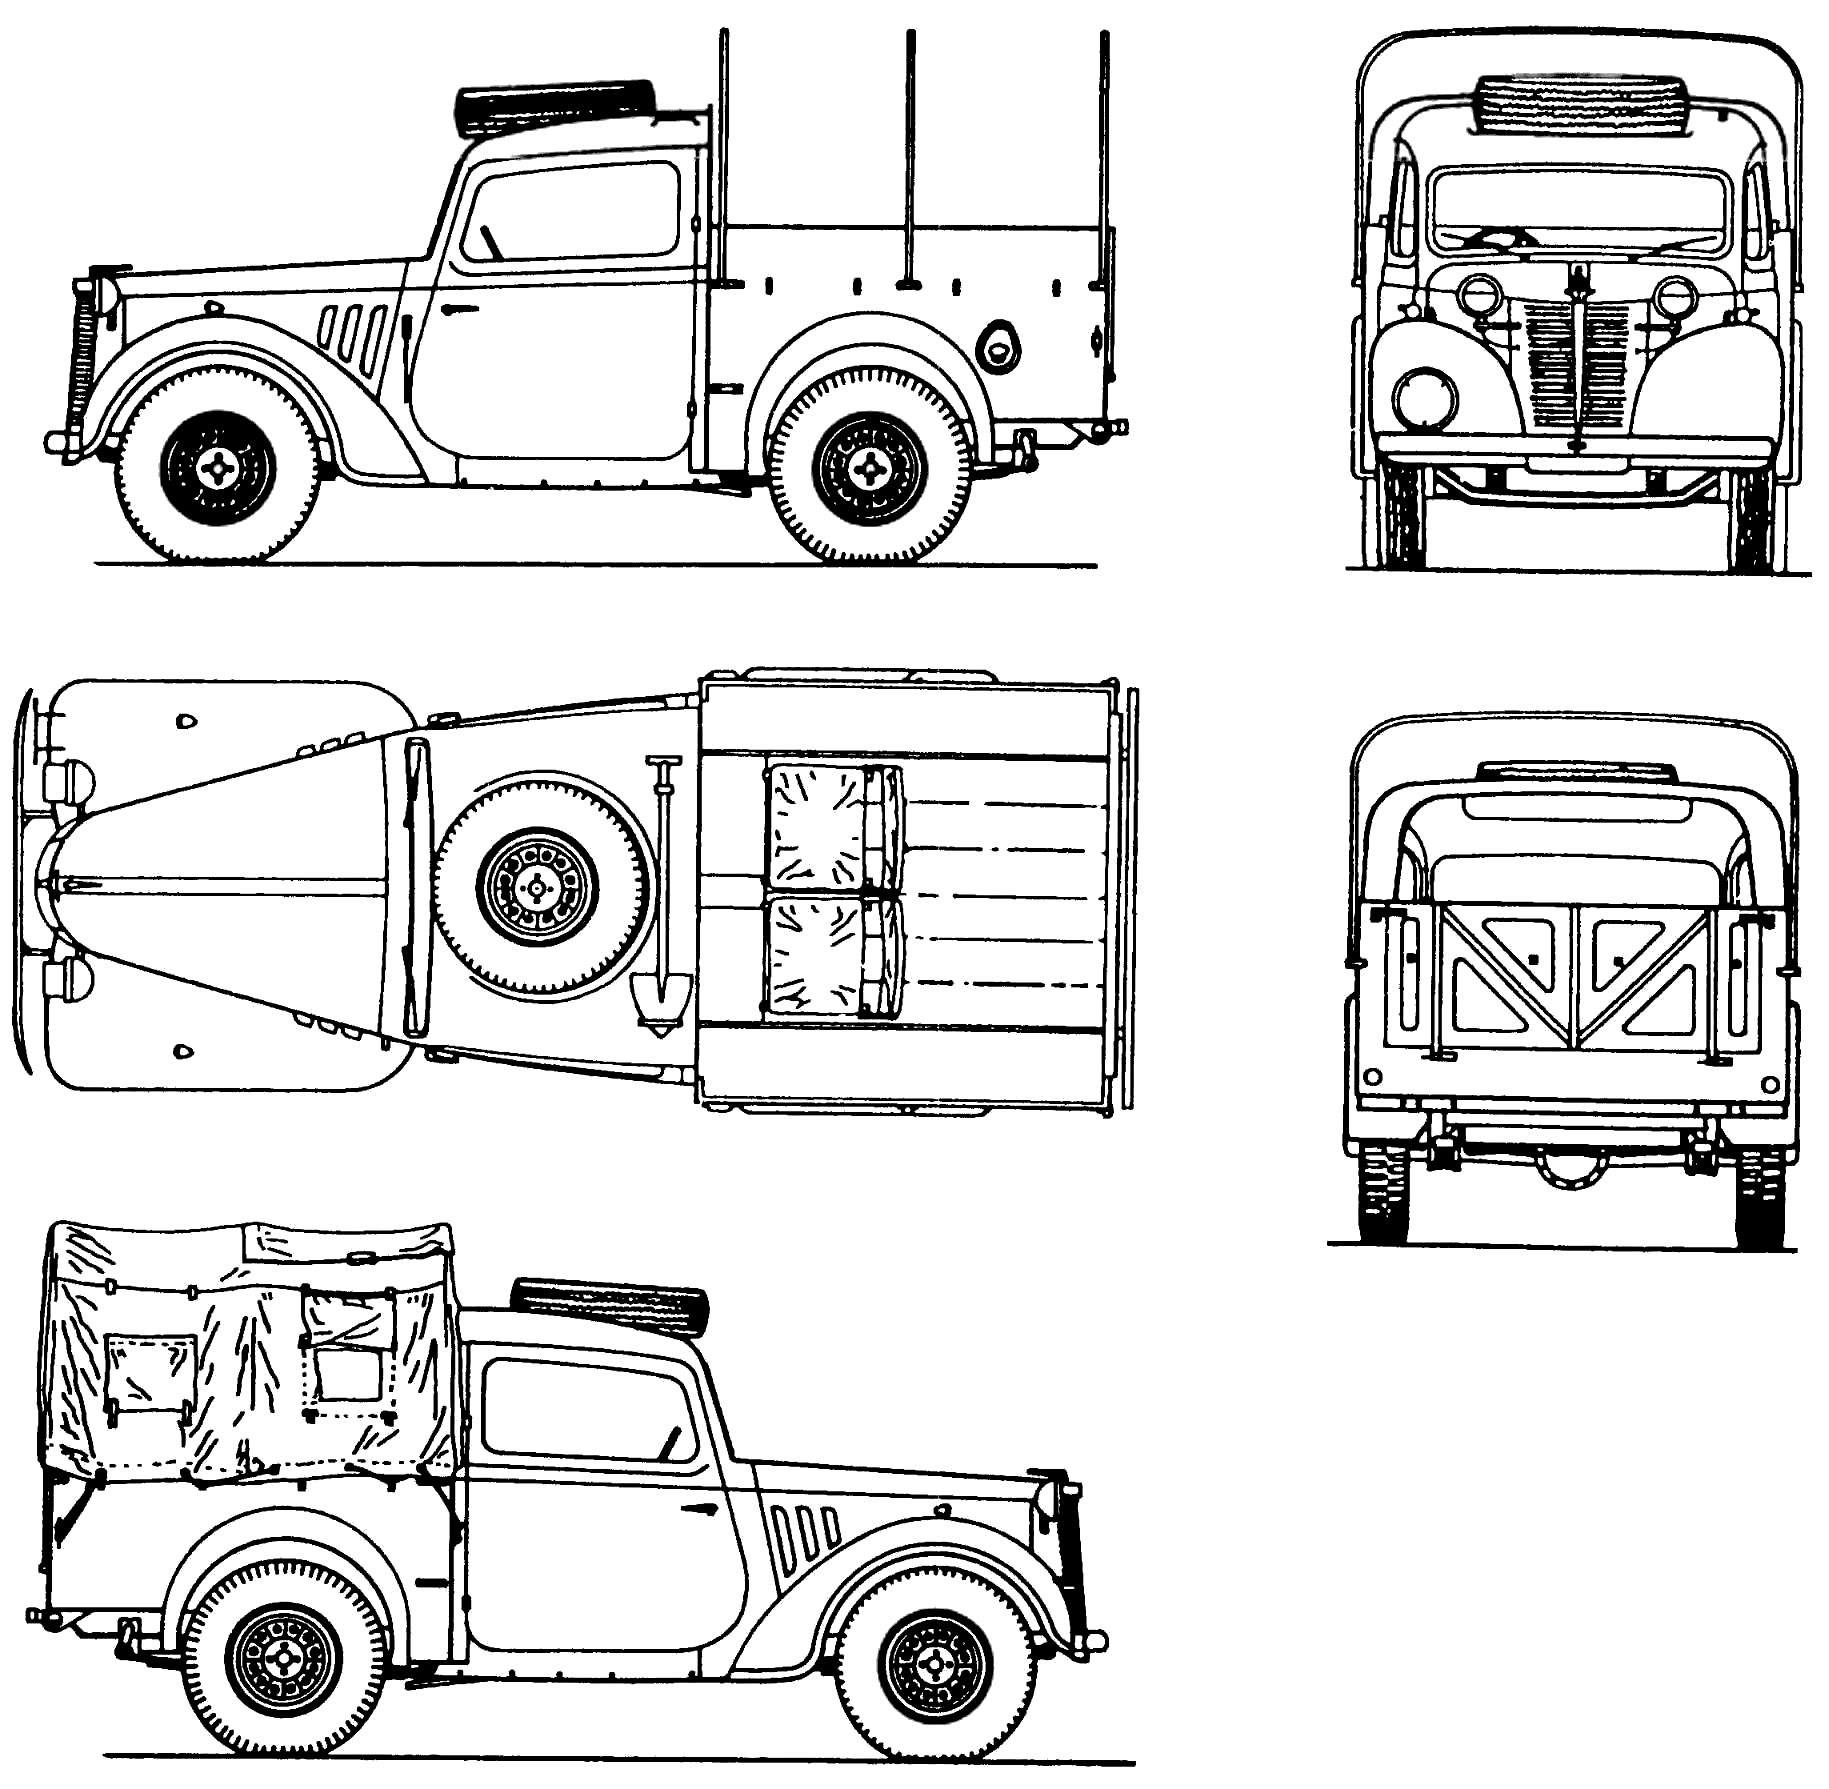 austin 10hp 1940 blueprint